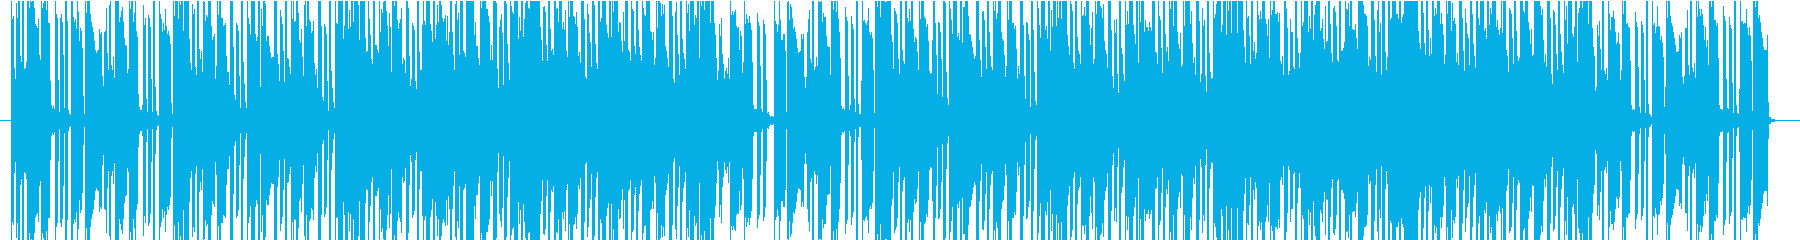 Drive Late Rock's reproduced waveform